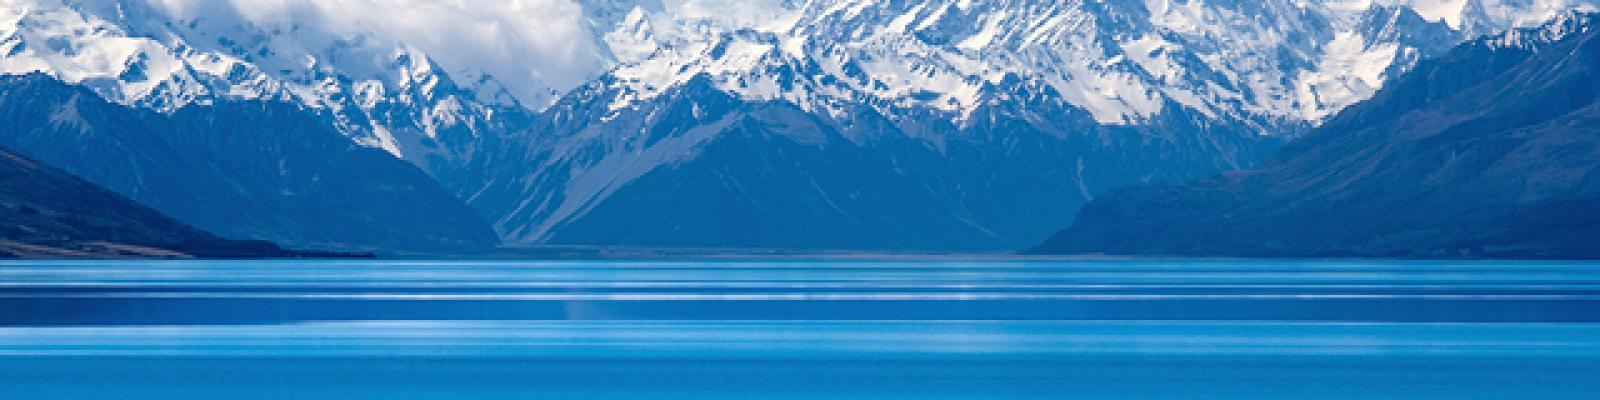 Image of blue bay water in foreground with snow-capped mountains and clouds in the distance